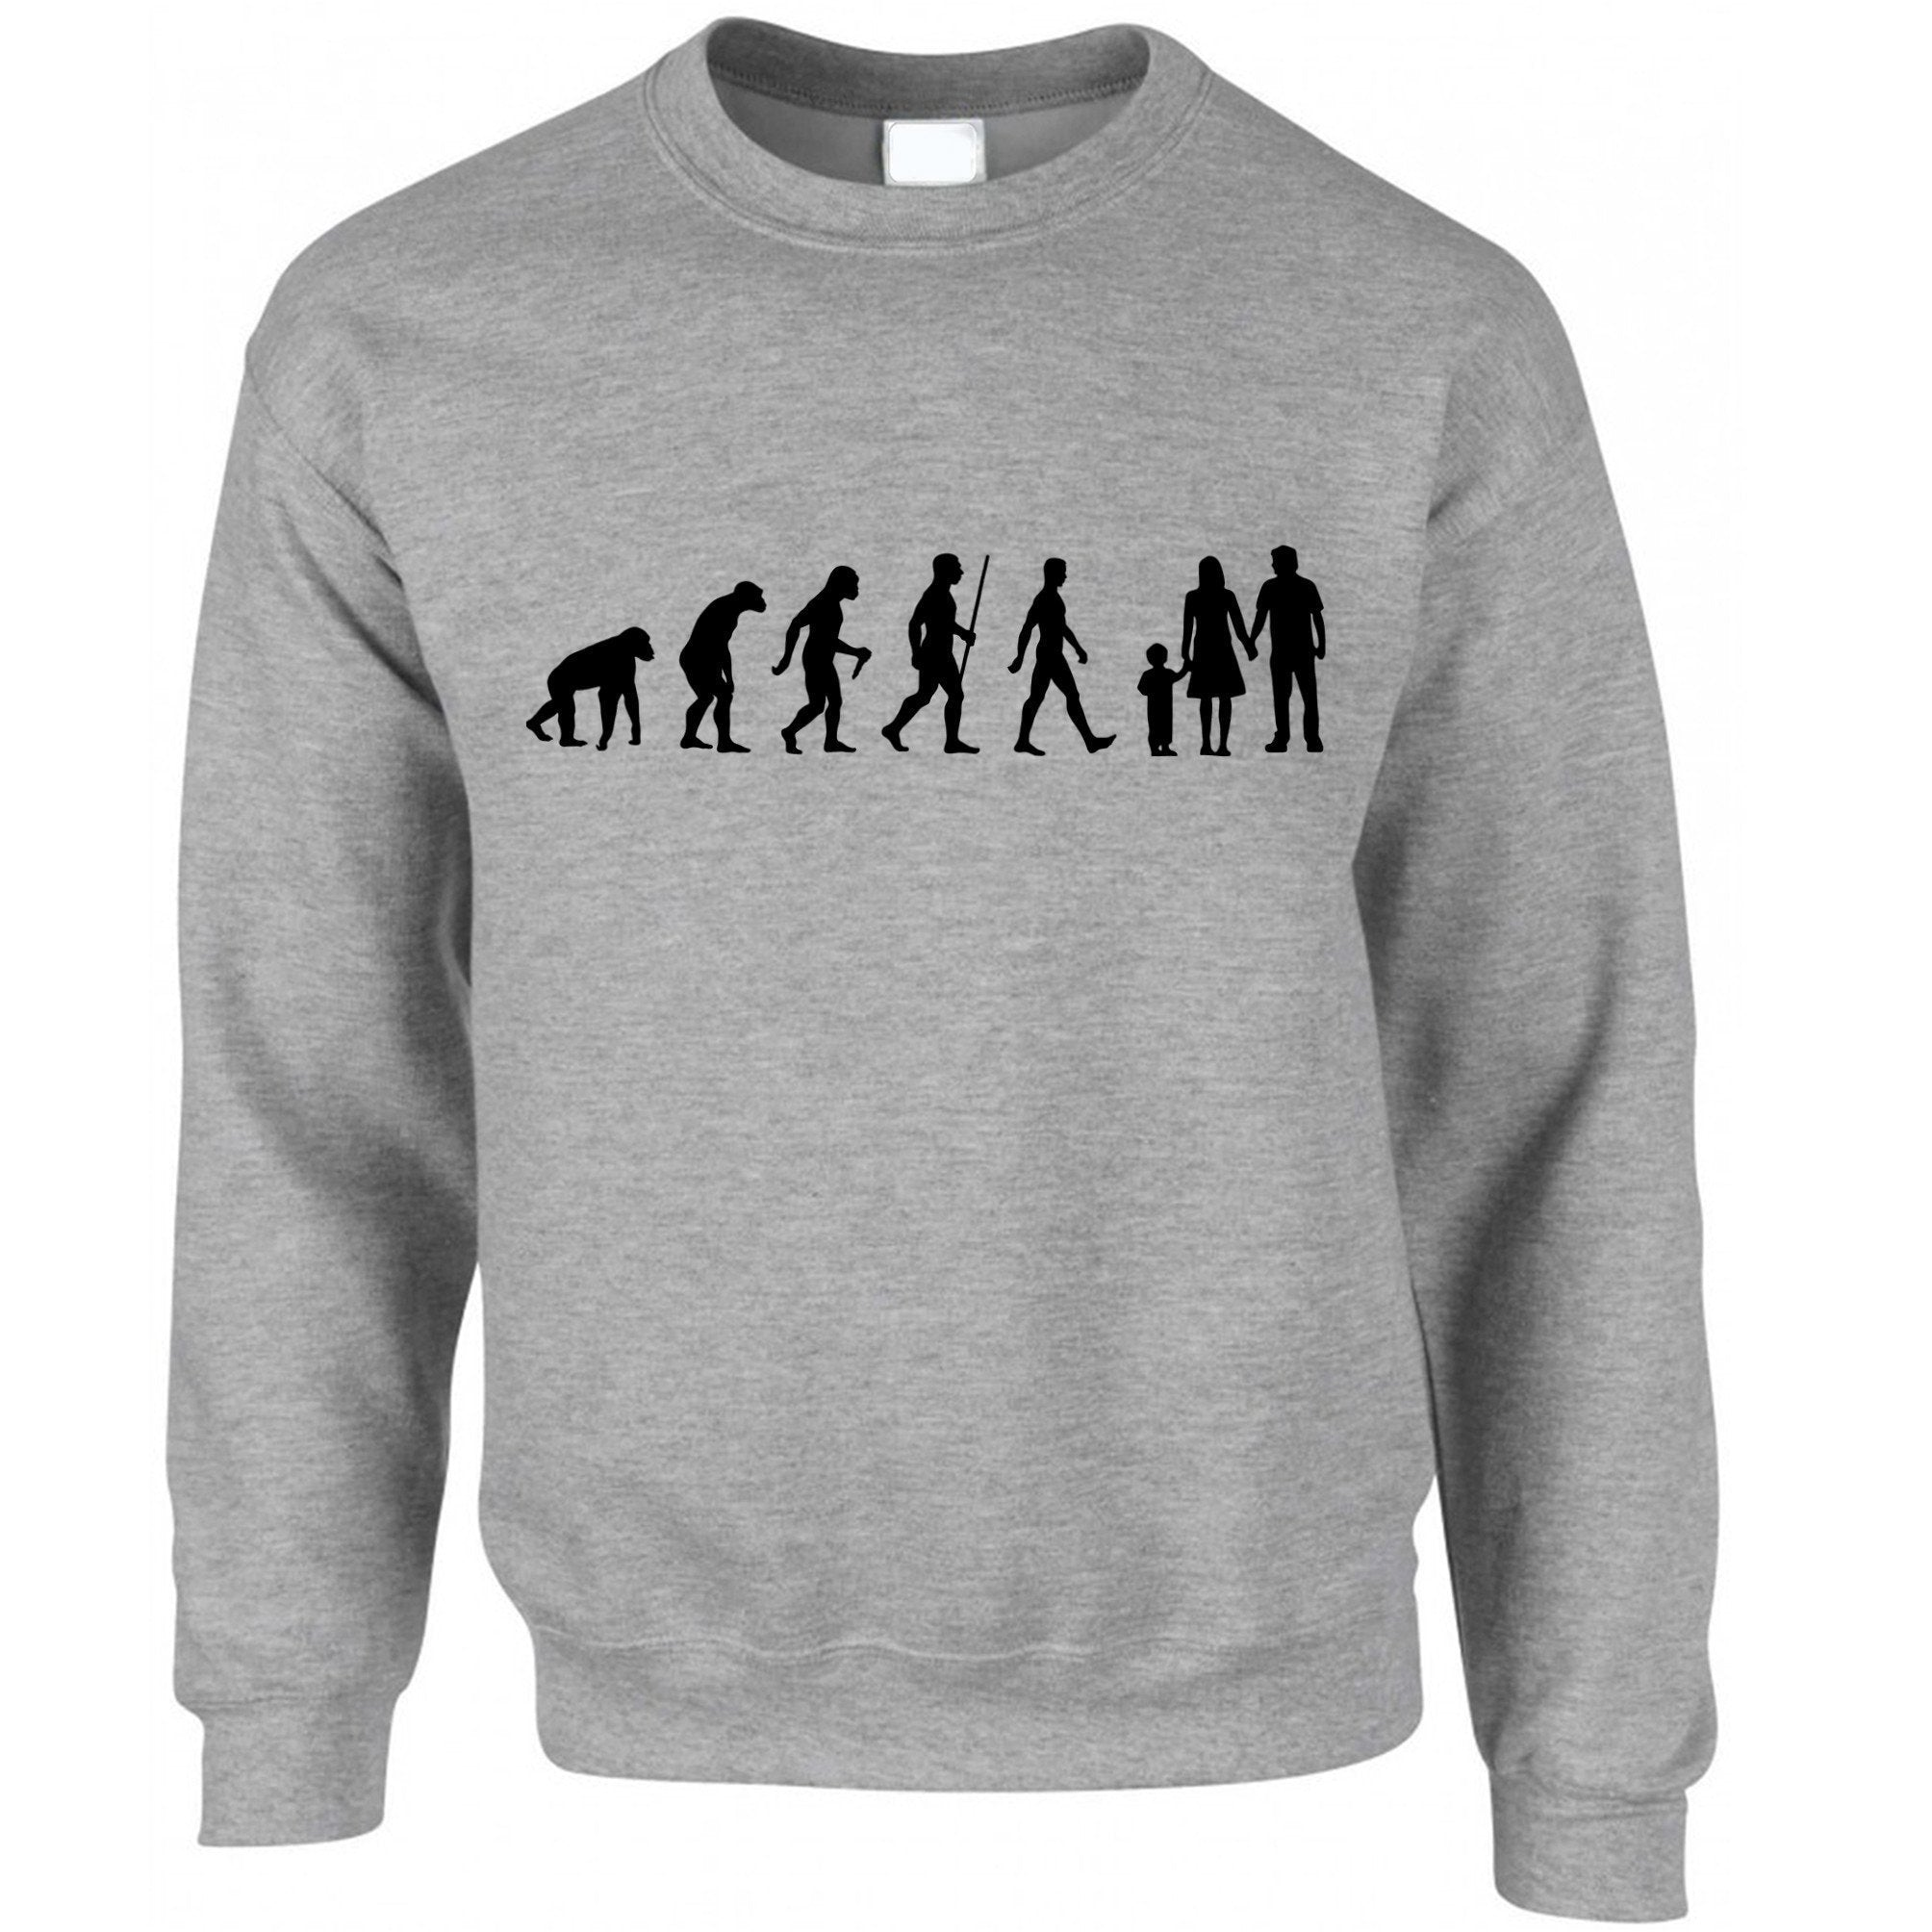 Parenthood Jumper Evolution Of A Family Two Boys Sweatshirt Sweater